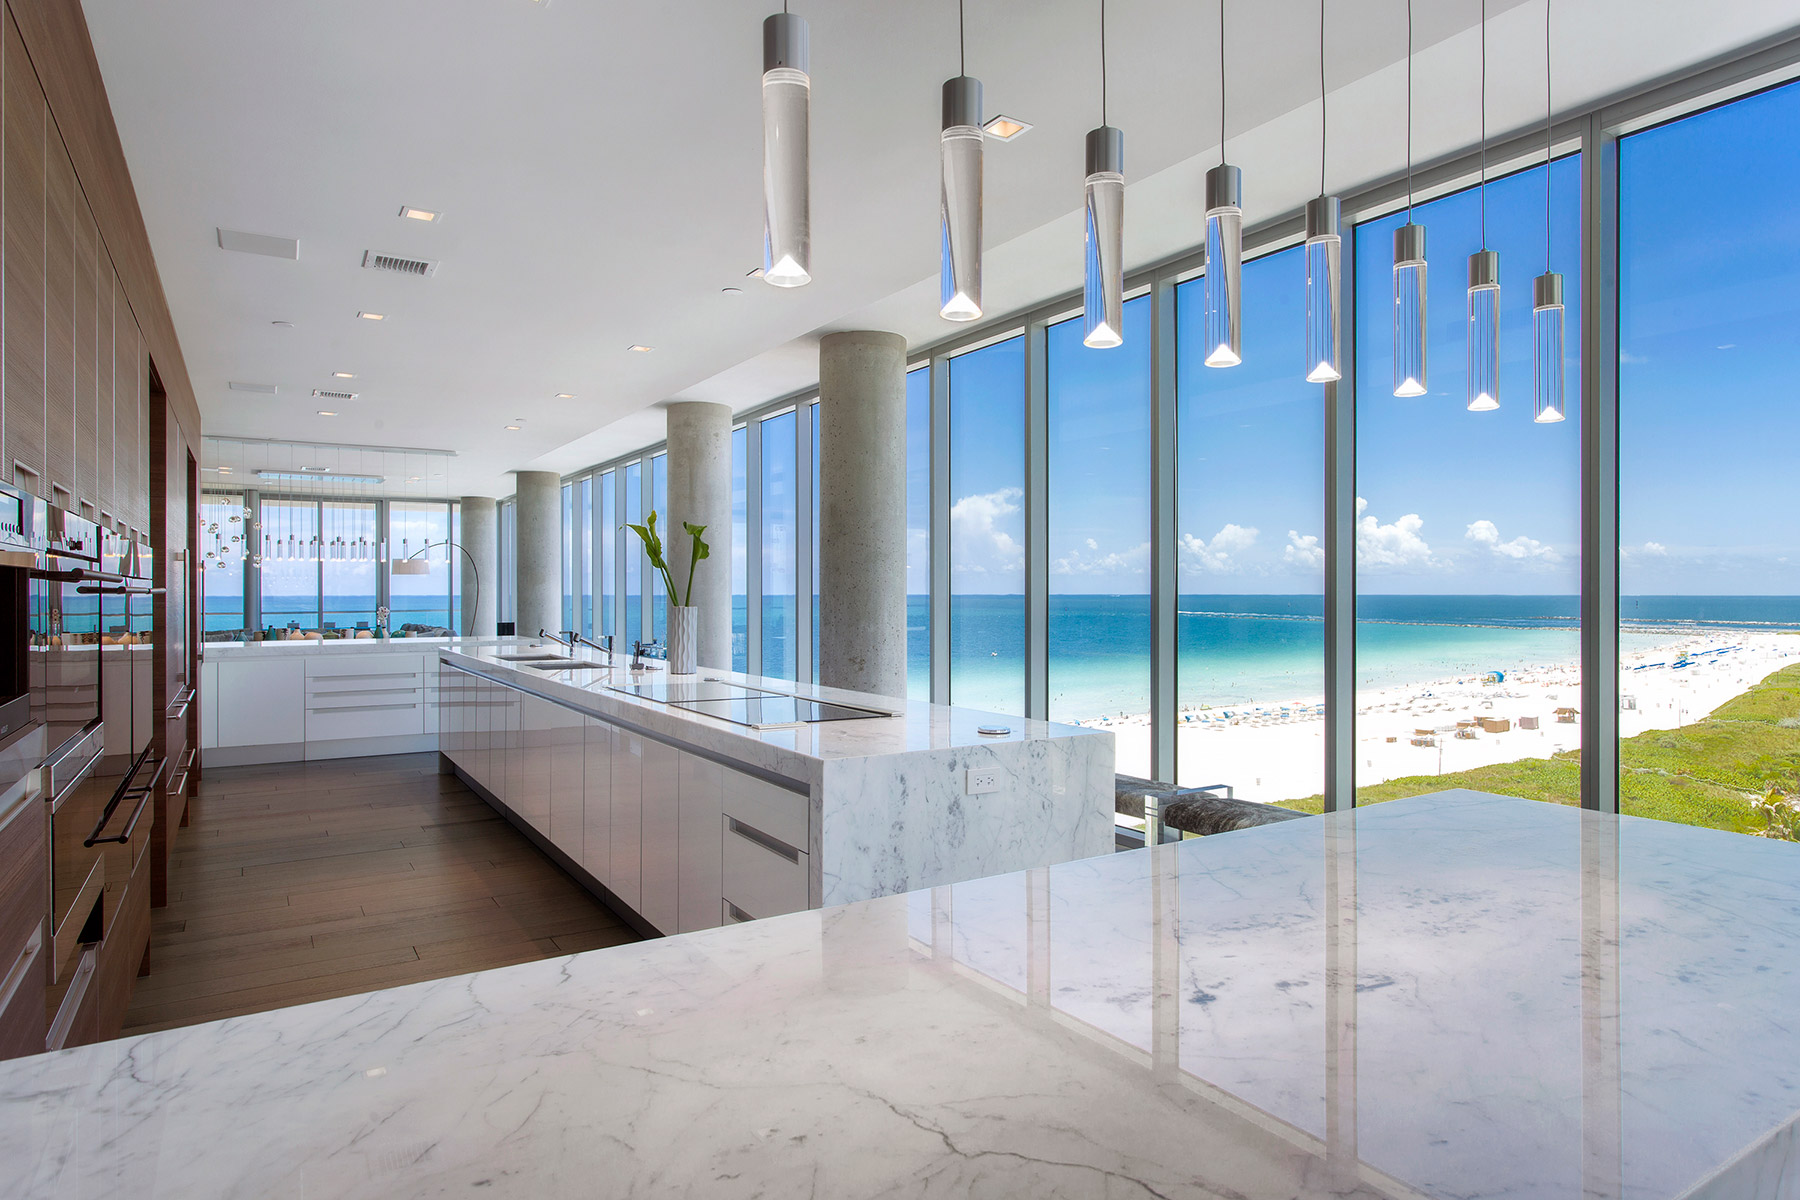 a high-end open kitchen inside the penthouse at 321 ocean overlooking South Beach